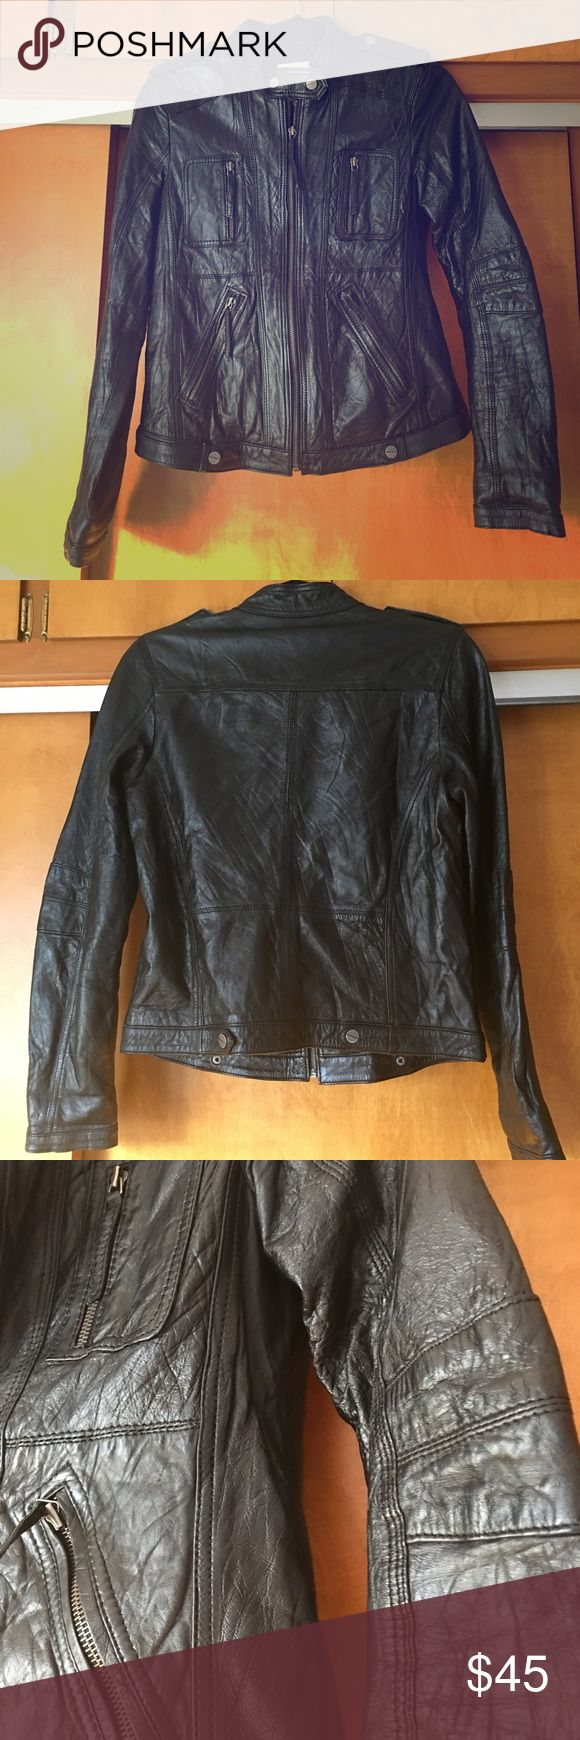 Bershka 100% Leather jacket size L This is a cool leather motorcycle jacket , from Spain size Large. It fits more like a medium.  The leather is not stiff and it's not a thick leather , which means it's totally wearable as the weather turns nicer , paired over a cute dress and some short boots with bare legs! Versatile and easy to slip into 💕 Bershka Jackets & Coats Utility Jackets